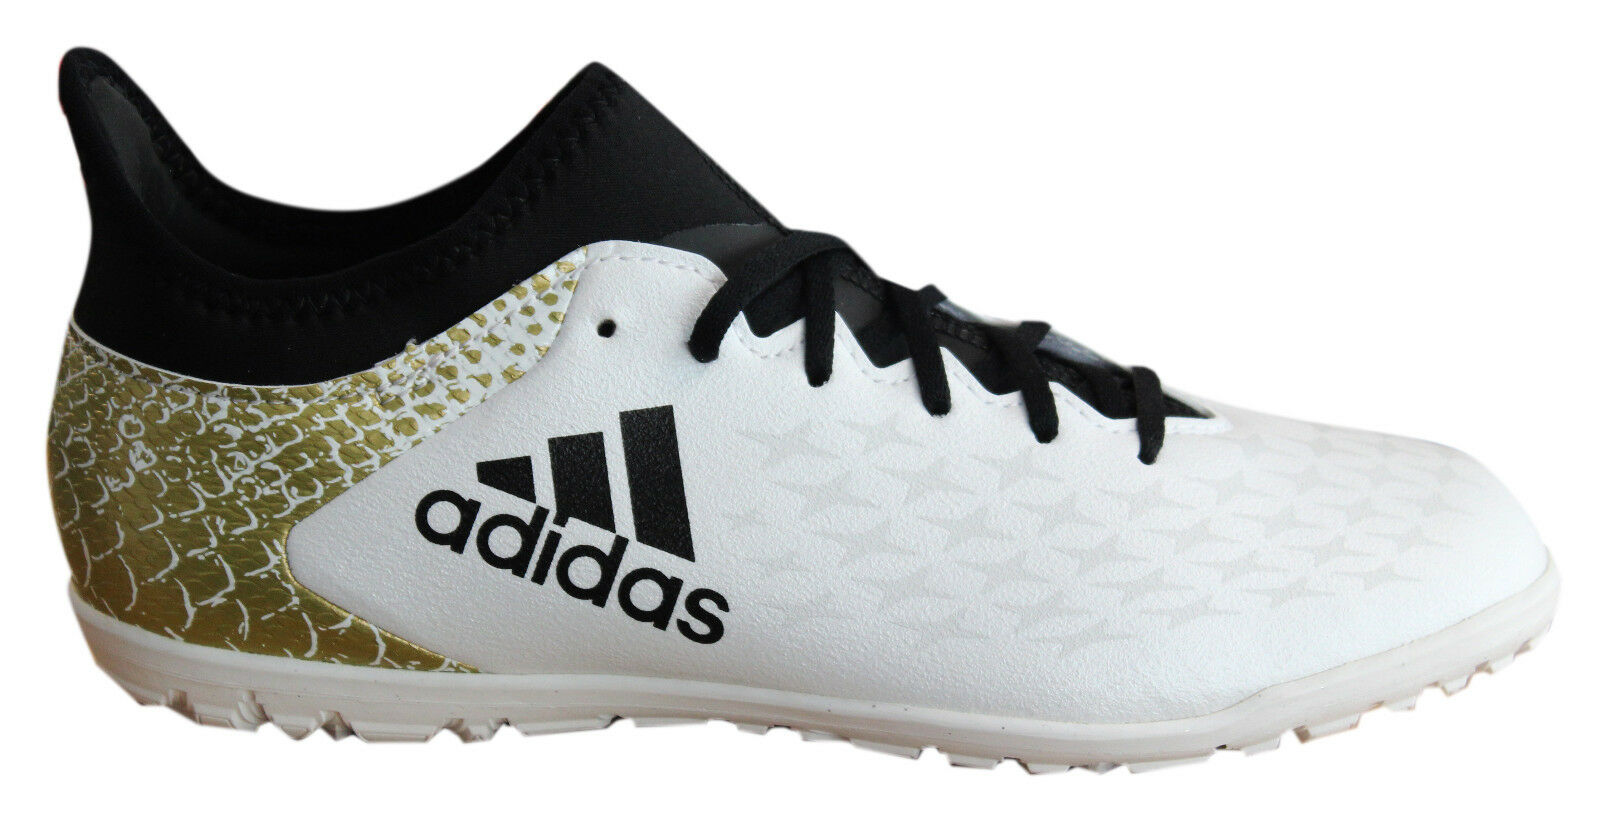 Adidas X 16.3 TF Astro Lace Up White Black Gold Kids Football ...